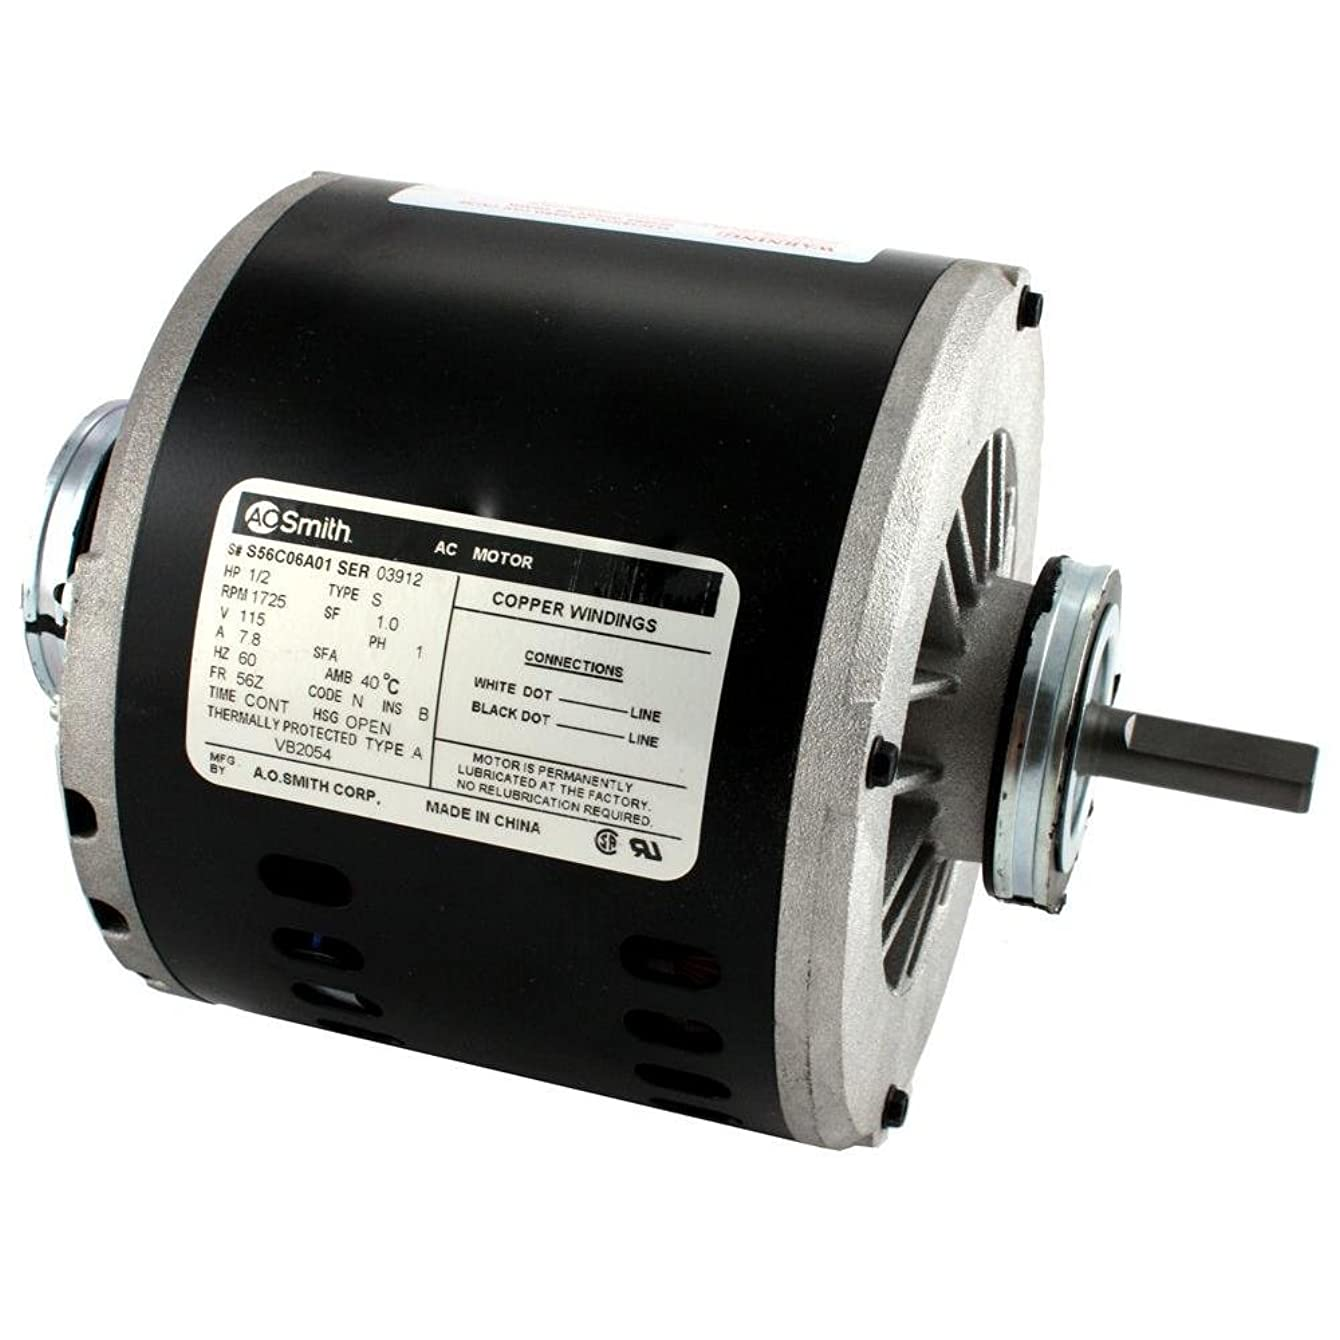 115 Volt 1/2 HP Evaporative Cooler Motor - Single Speed